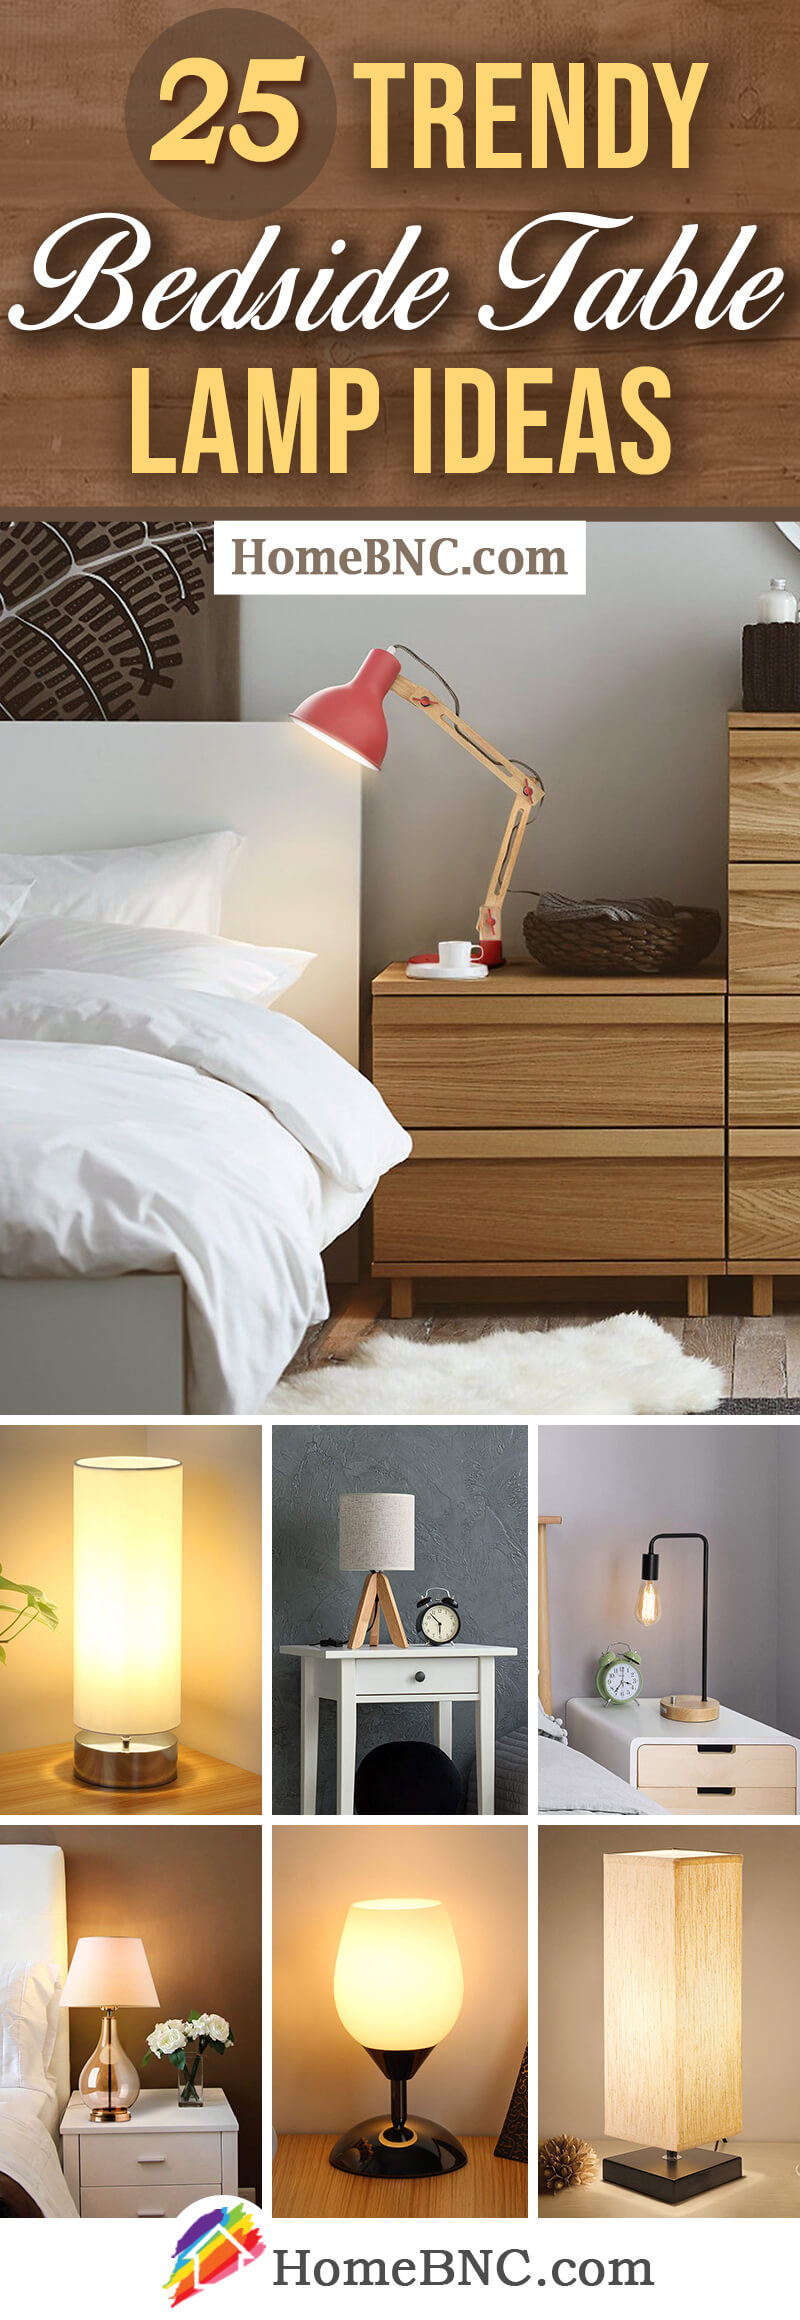 25 Best Bedside Table Lamps To Light Up Your Evenings In 2019